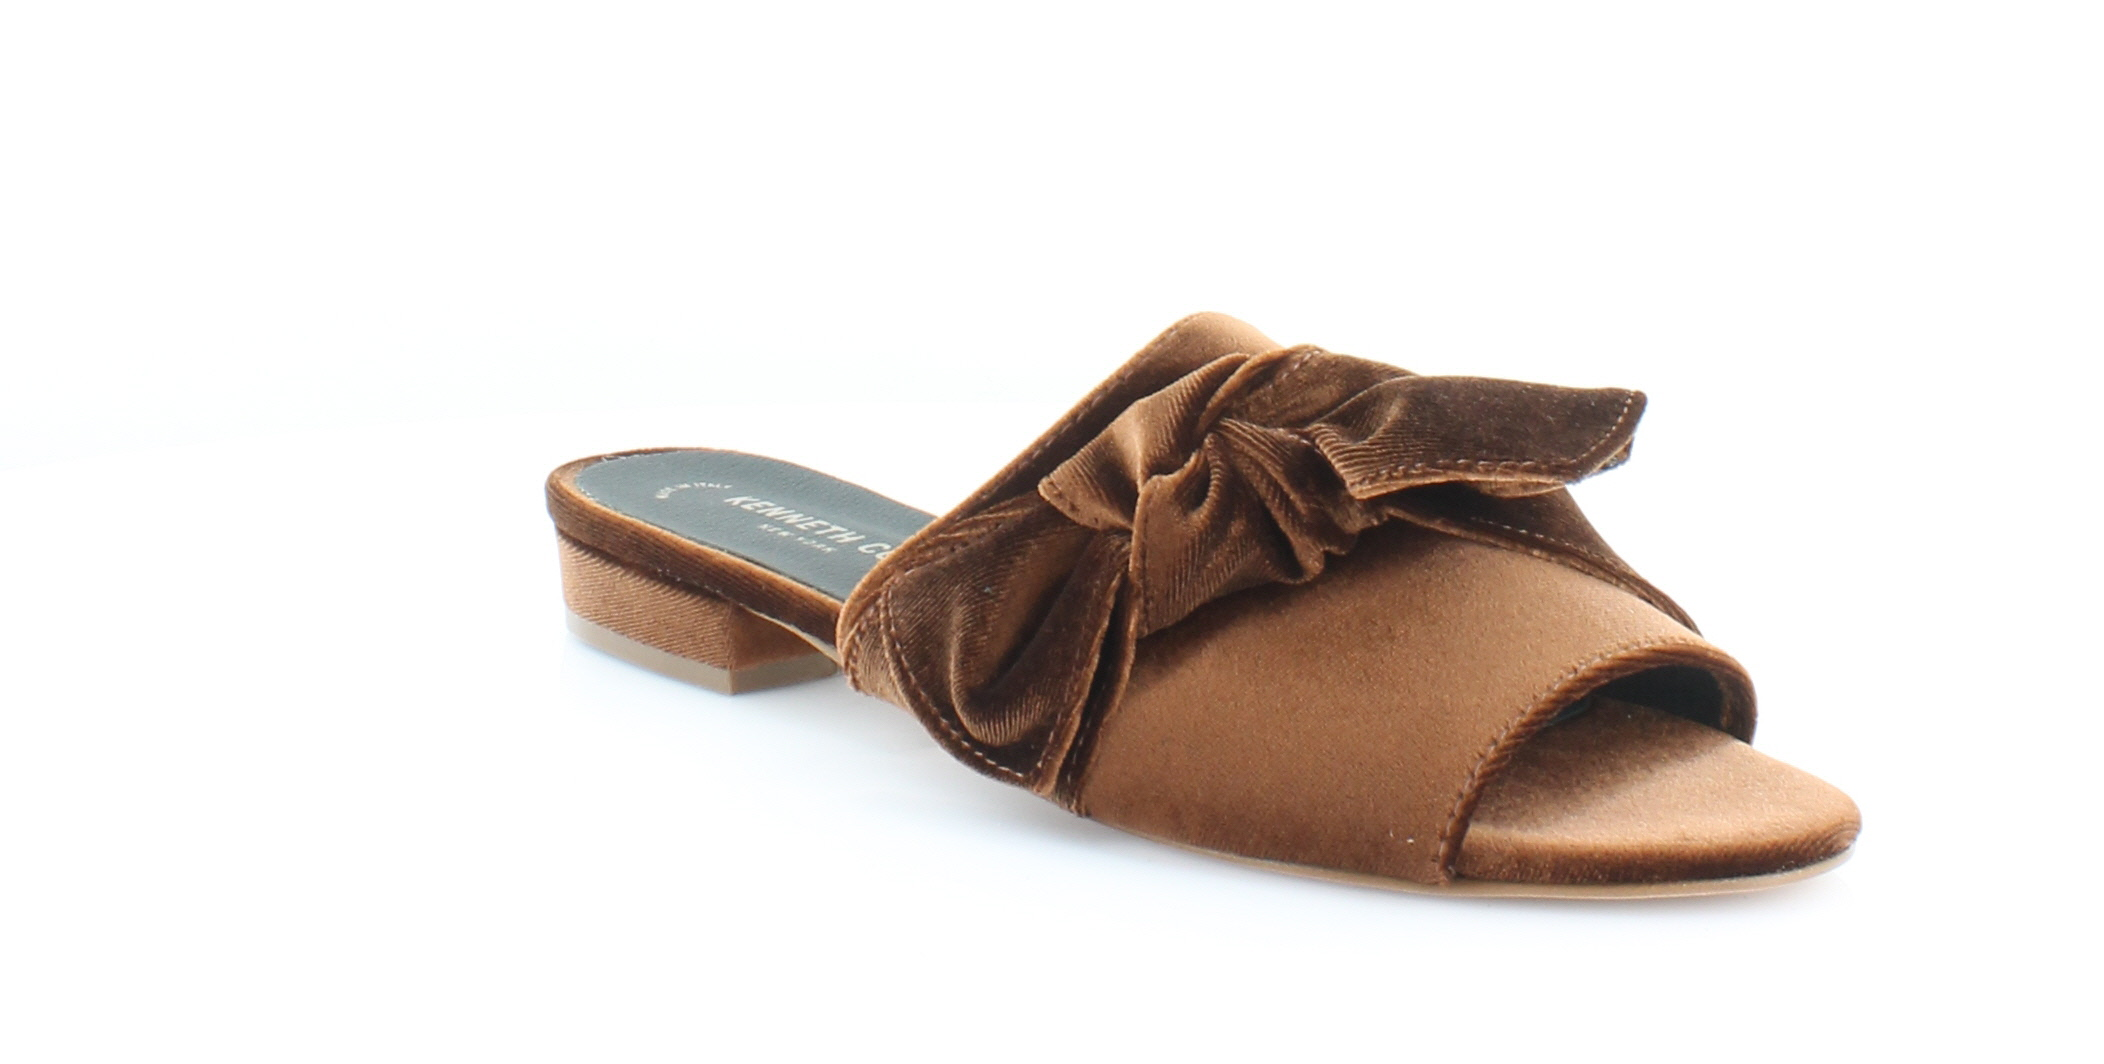 Kenneth Cole Candice Women's Flats & Oxfords Caramel Size 9 M